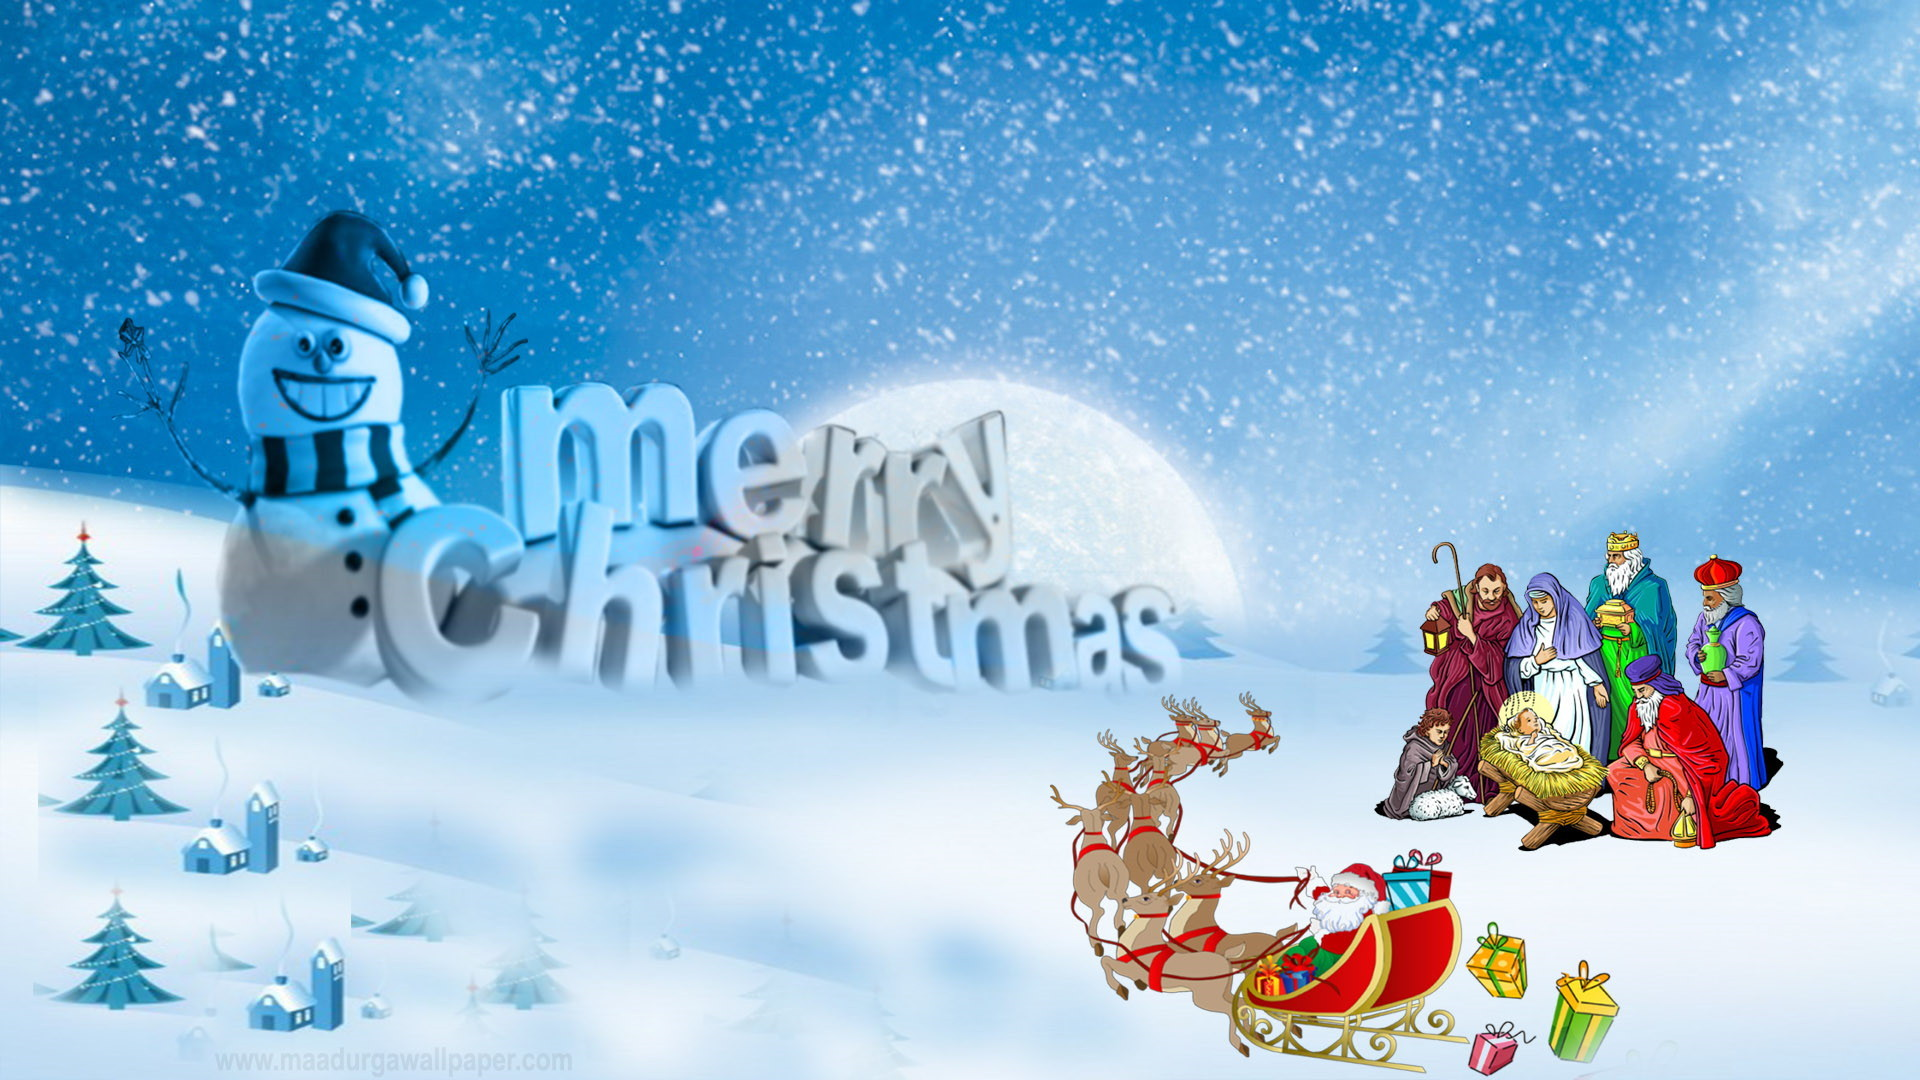 1920x1080 Baby Jesus Pictures, beautiful photo & hd images download free for tablet,  desktop pc